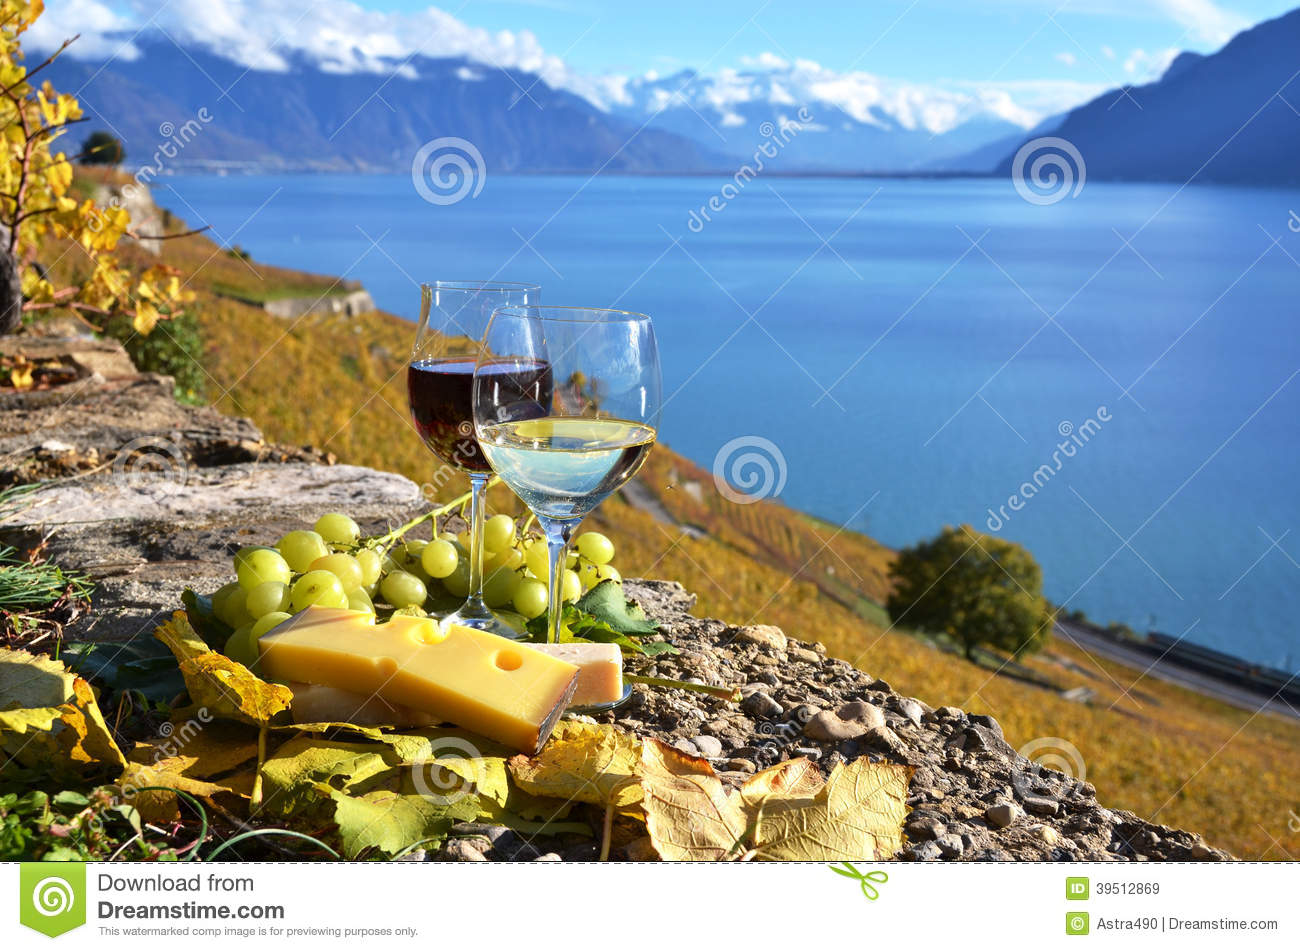 Two wineglasses, cheese and grapes